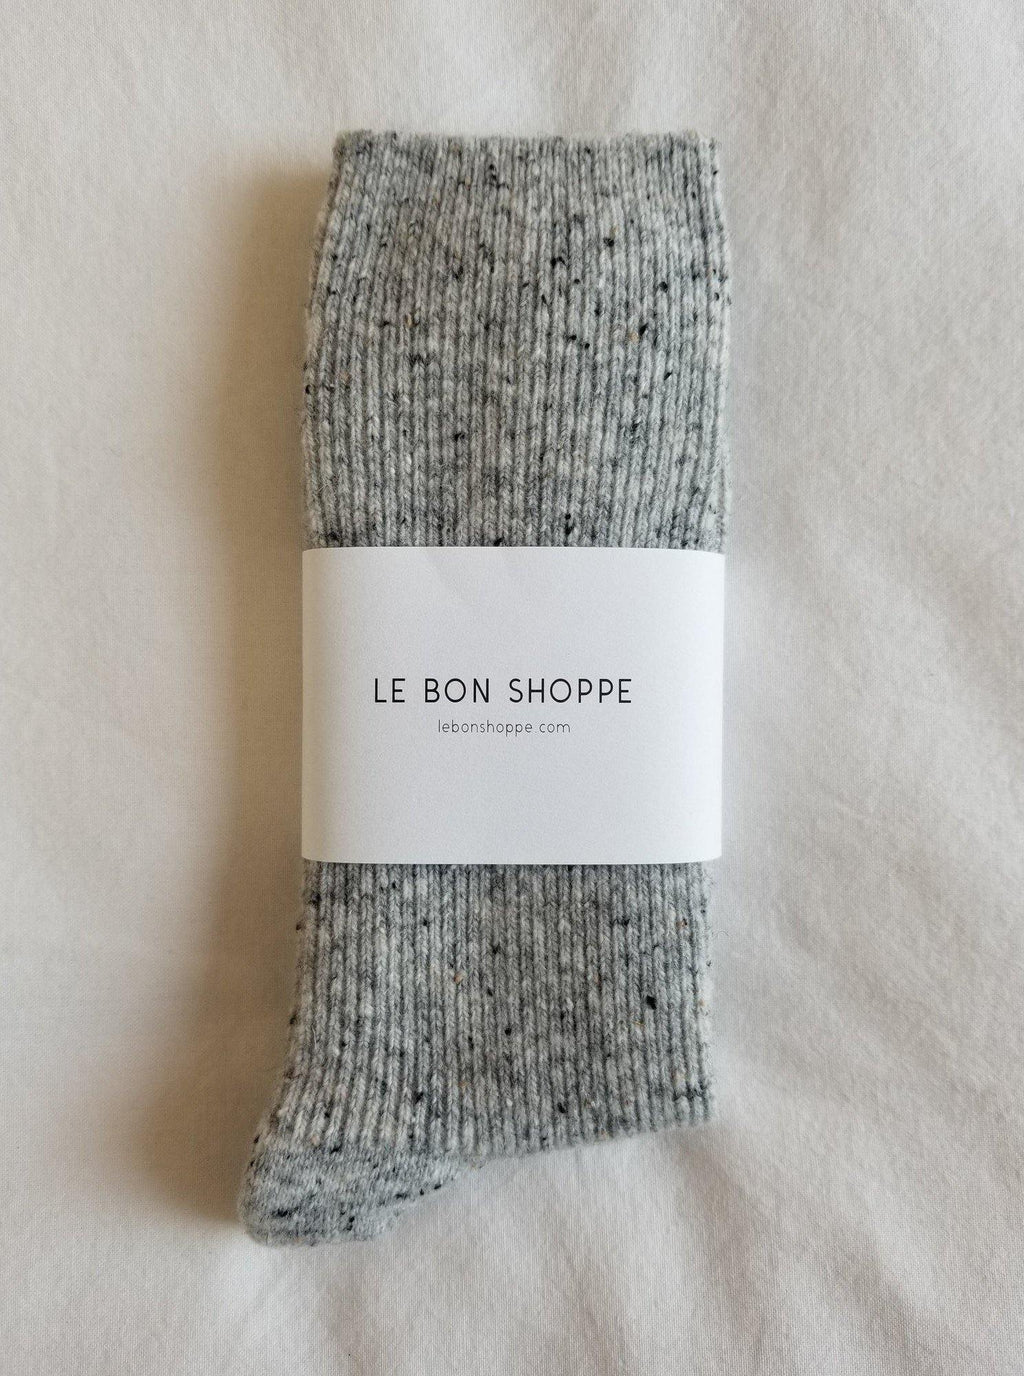 Le Bon Shoppe Snow Socks - Cookies & Cream - Vincent Park